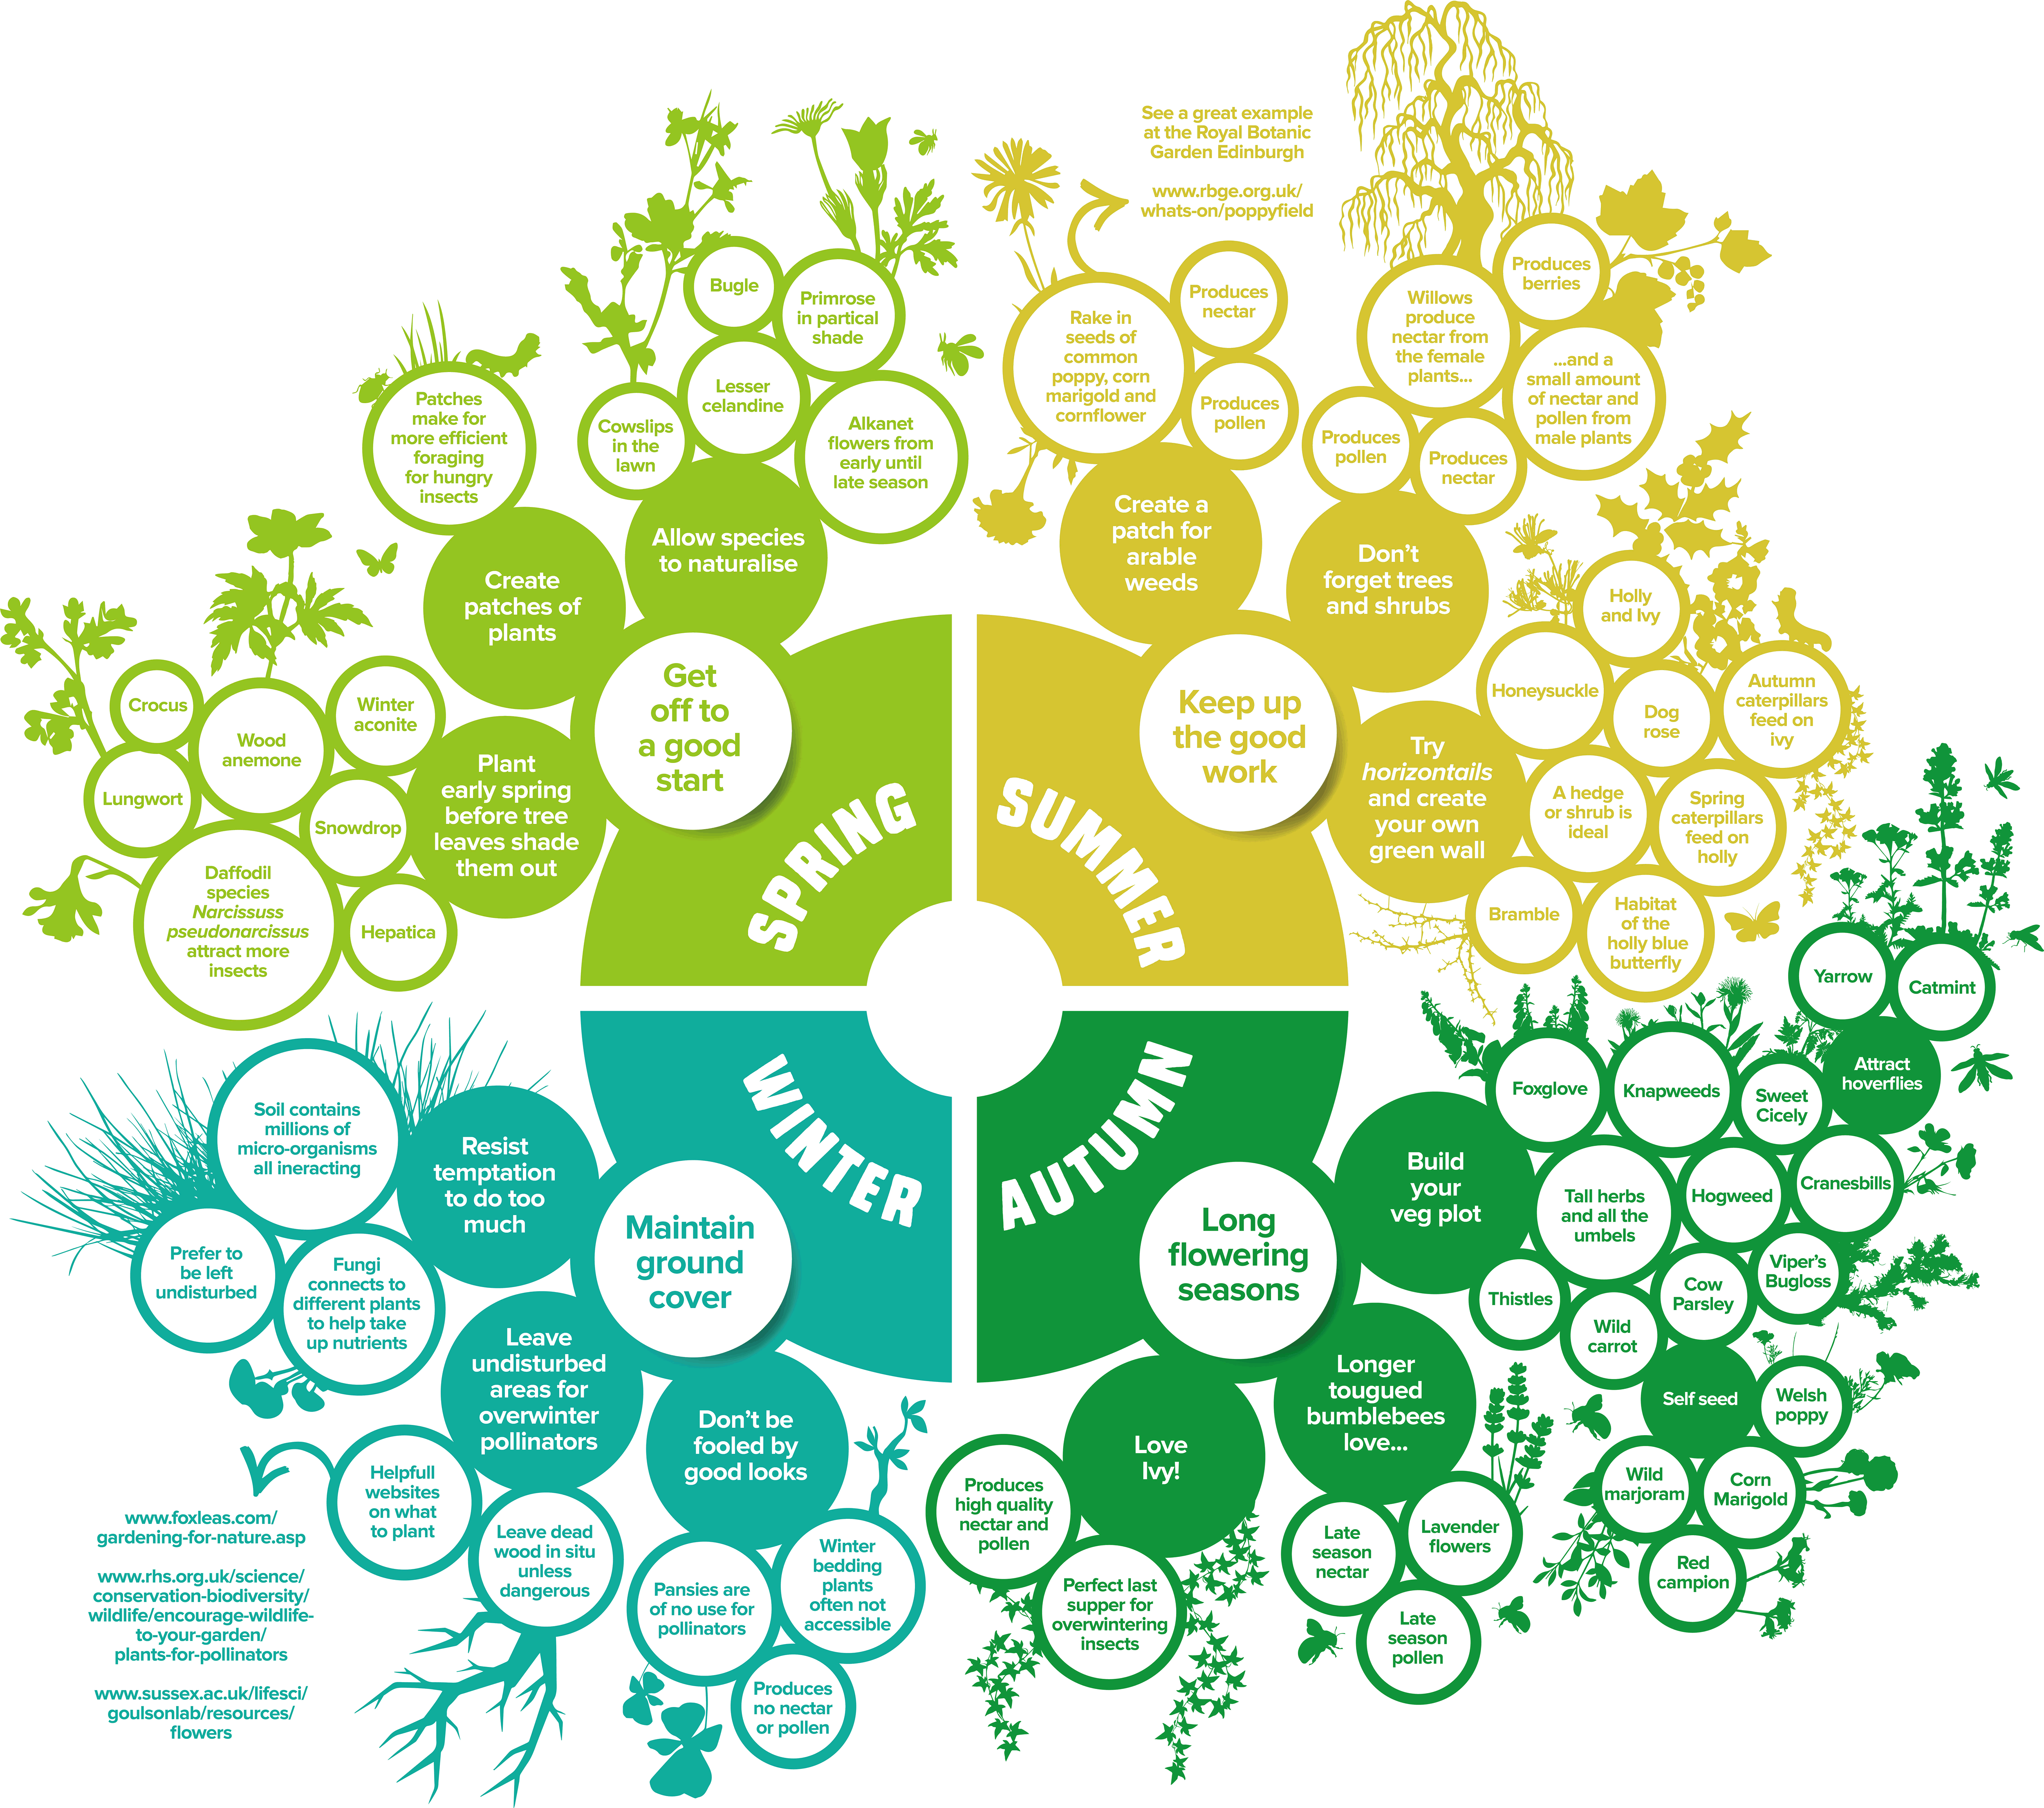 Pollinator Pledge infographic